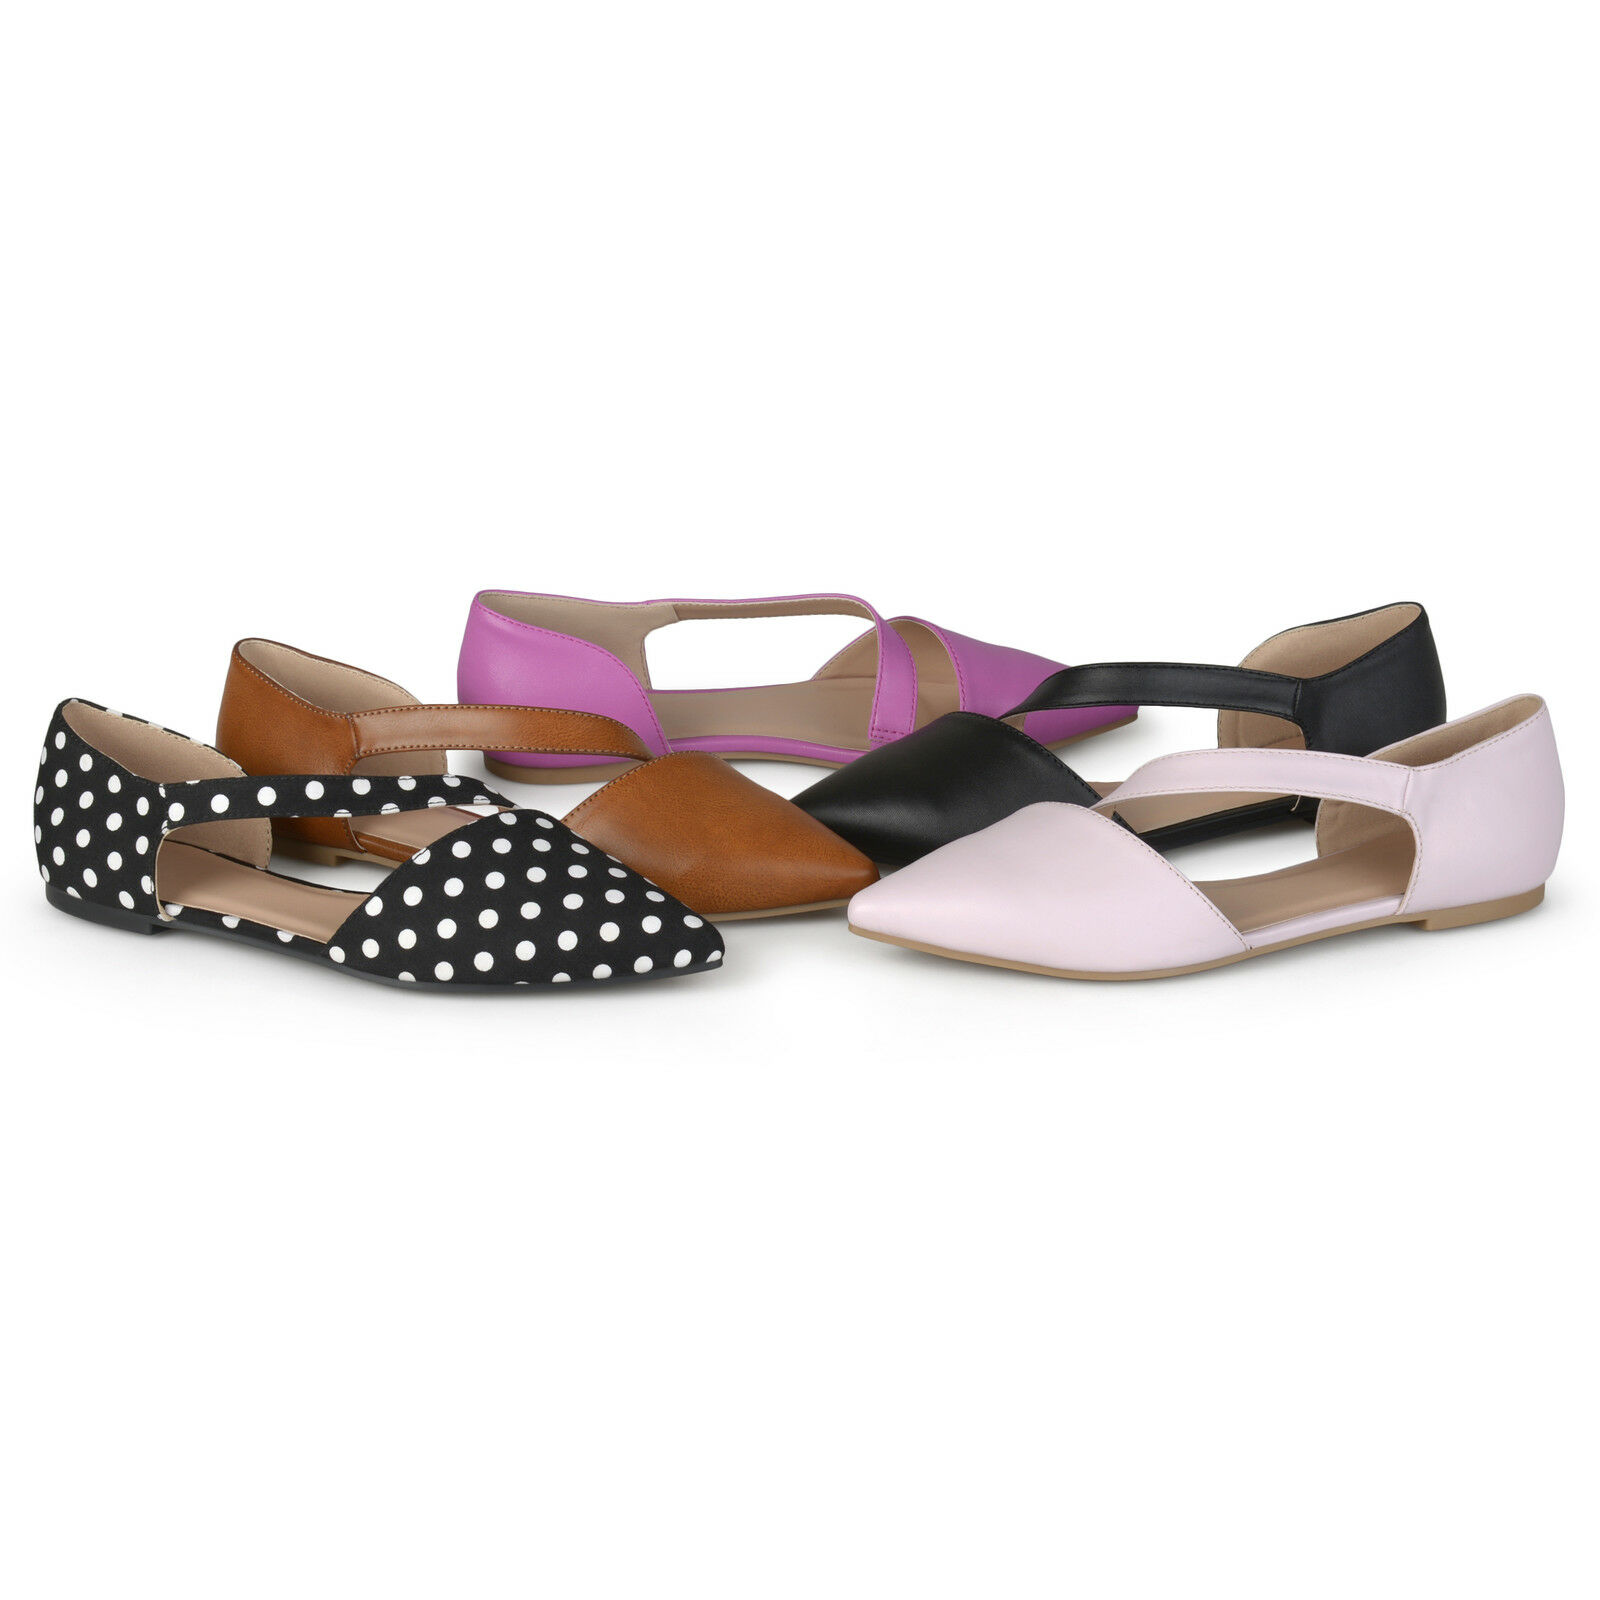 Brinley Co Womens Cross Strap Pointed Toe Flats New